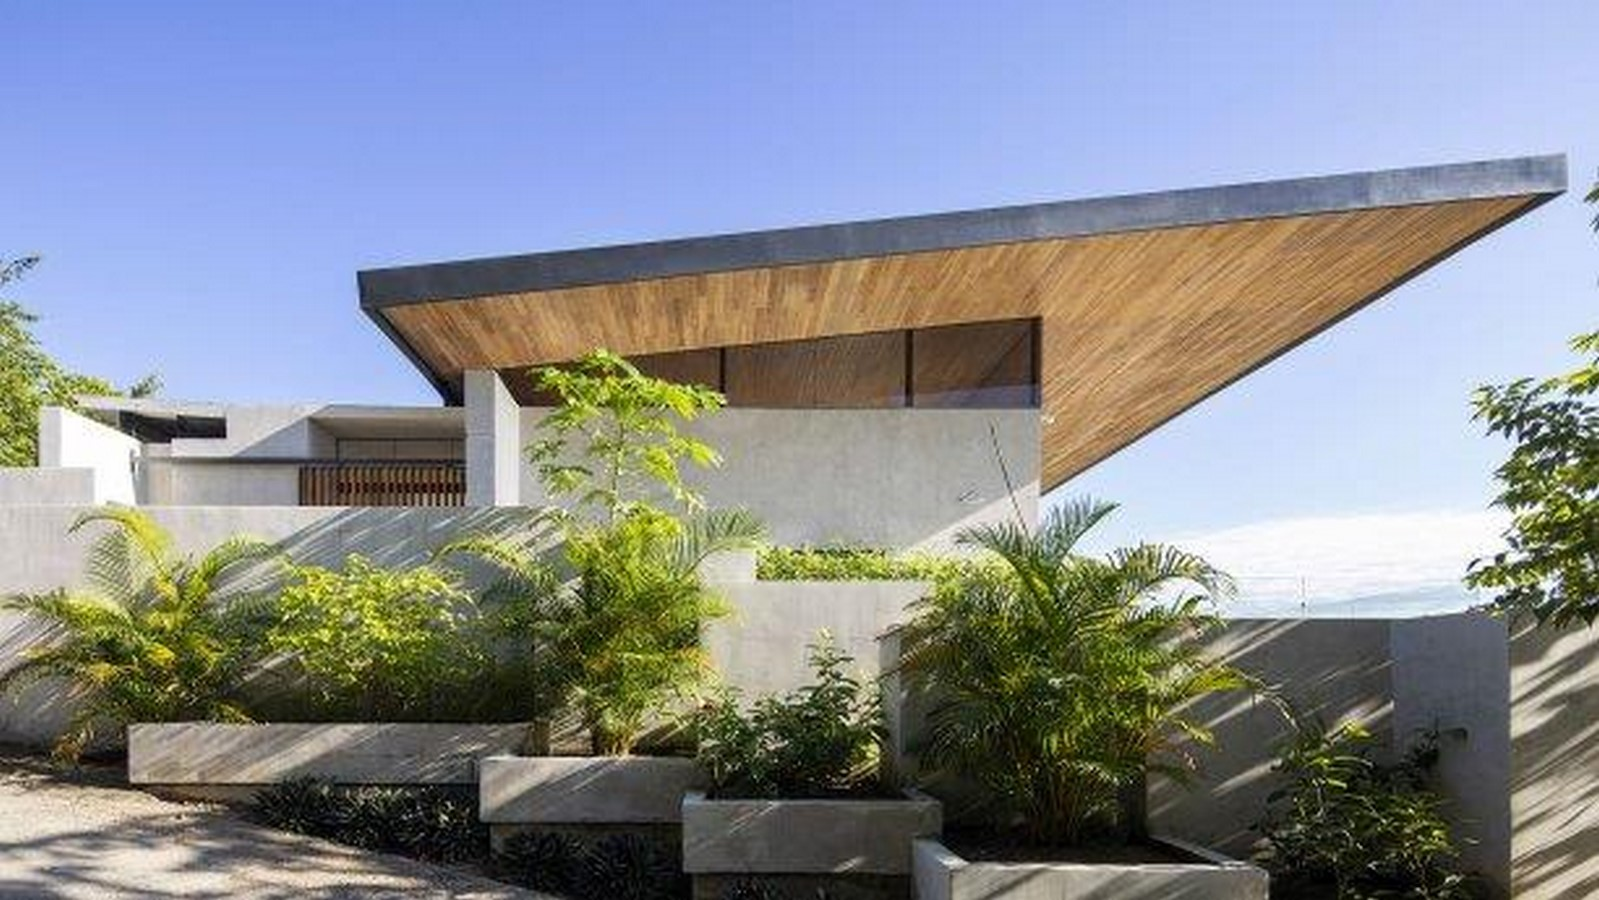 10 Emerging Architecture Firms in 2021 Sheet5